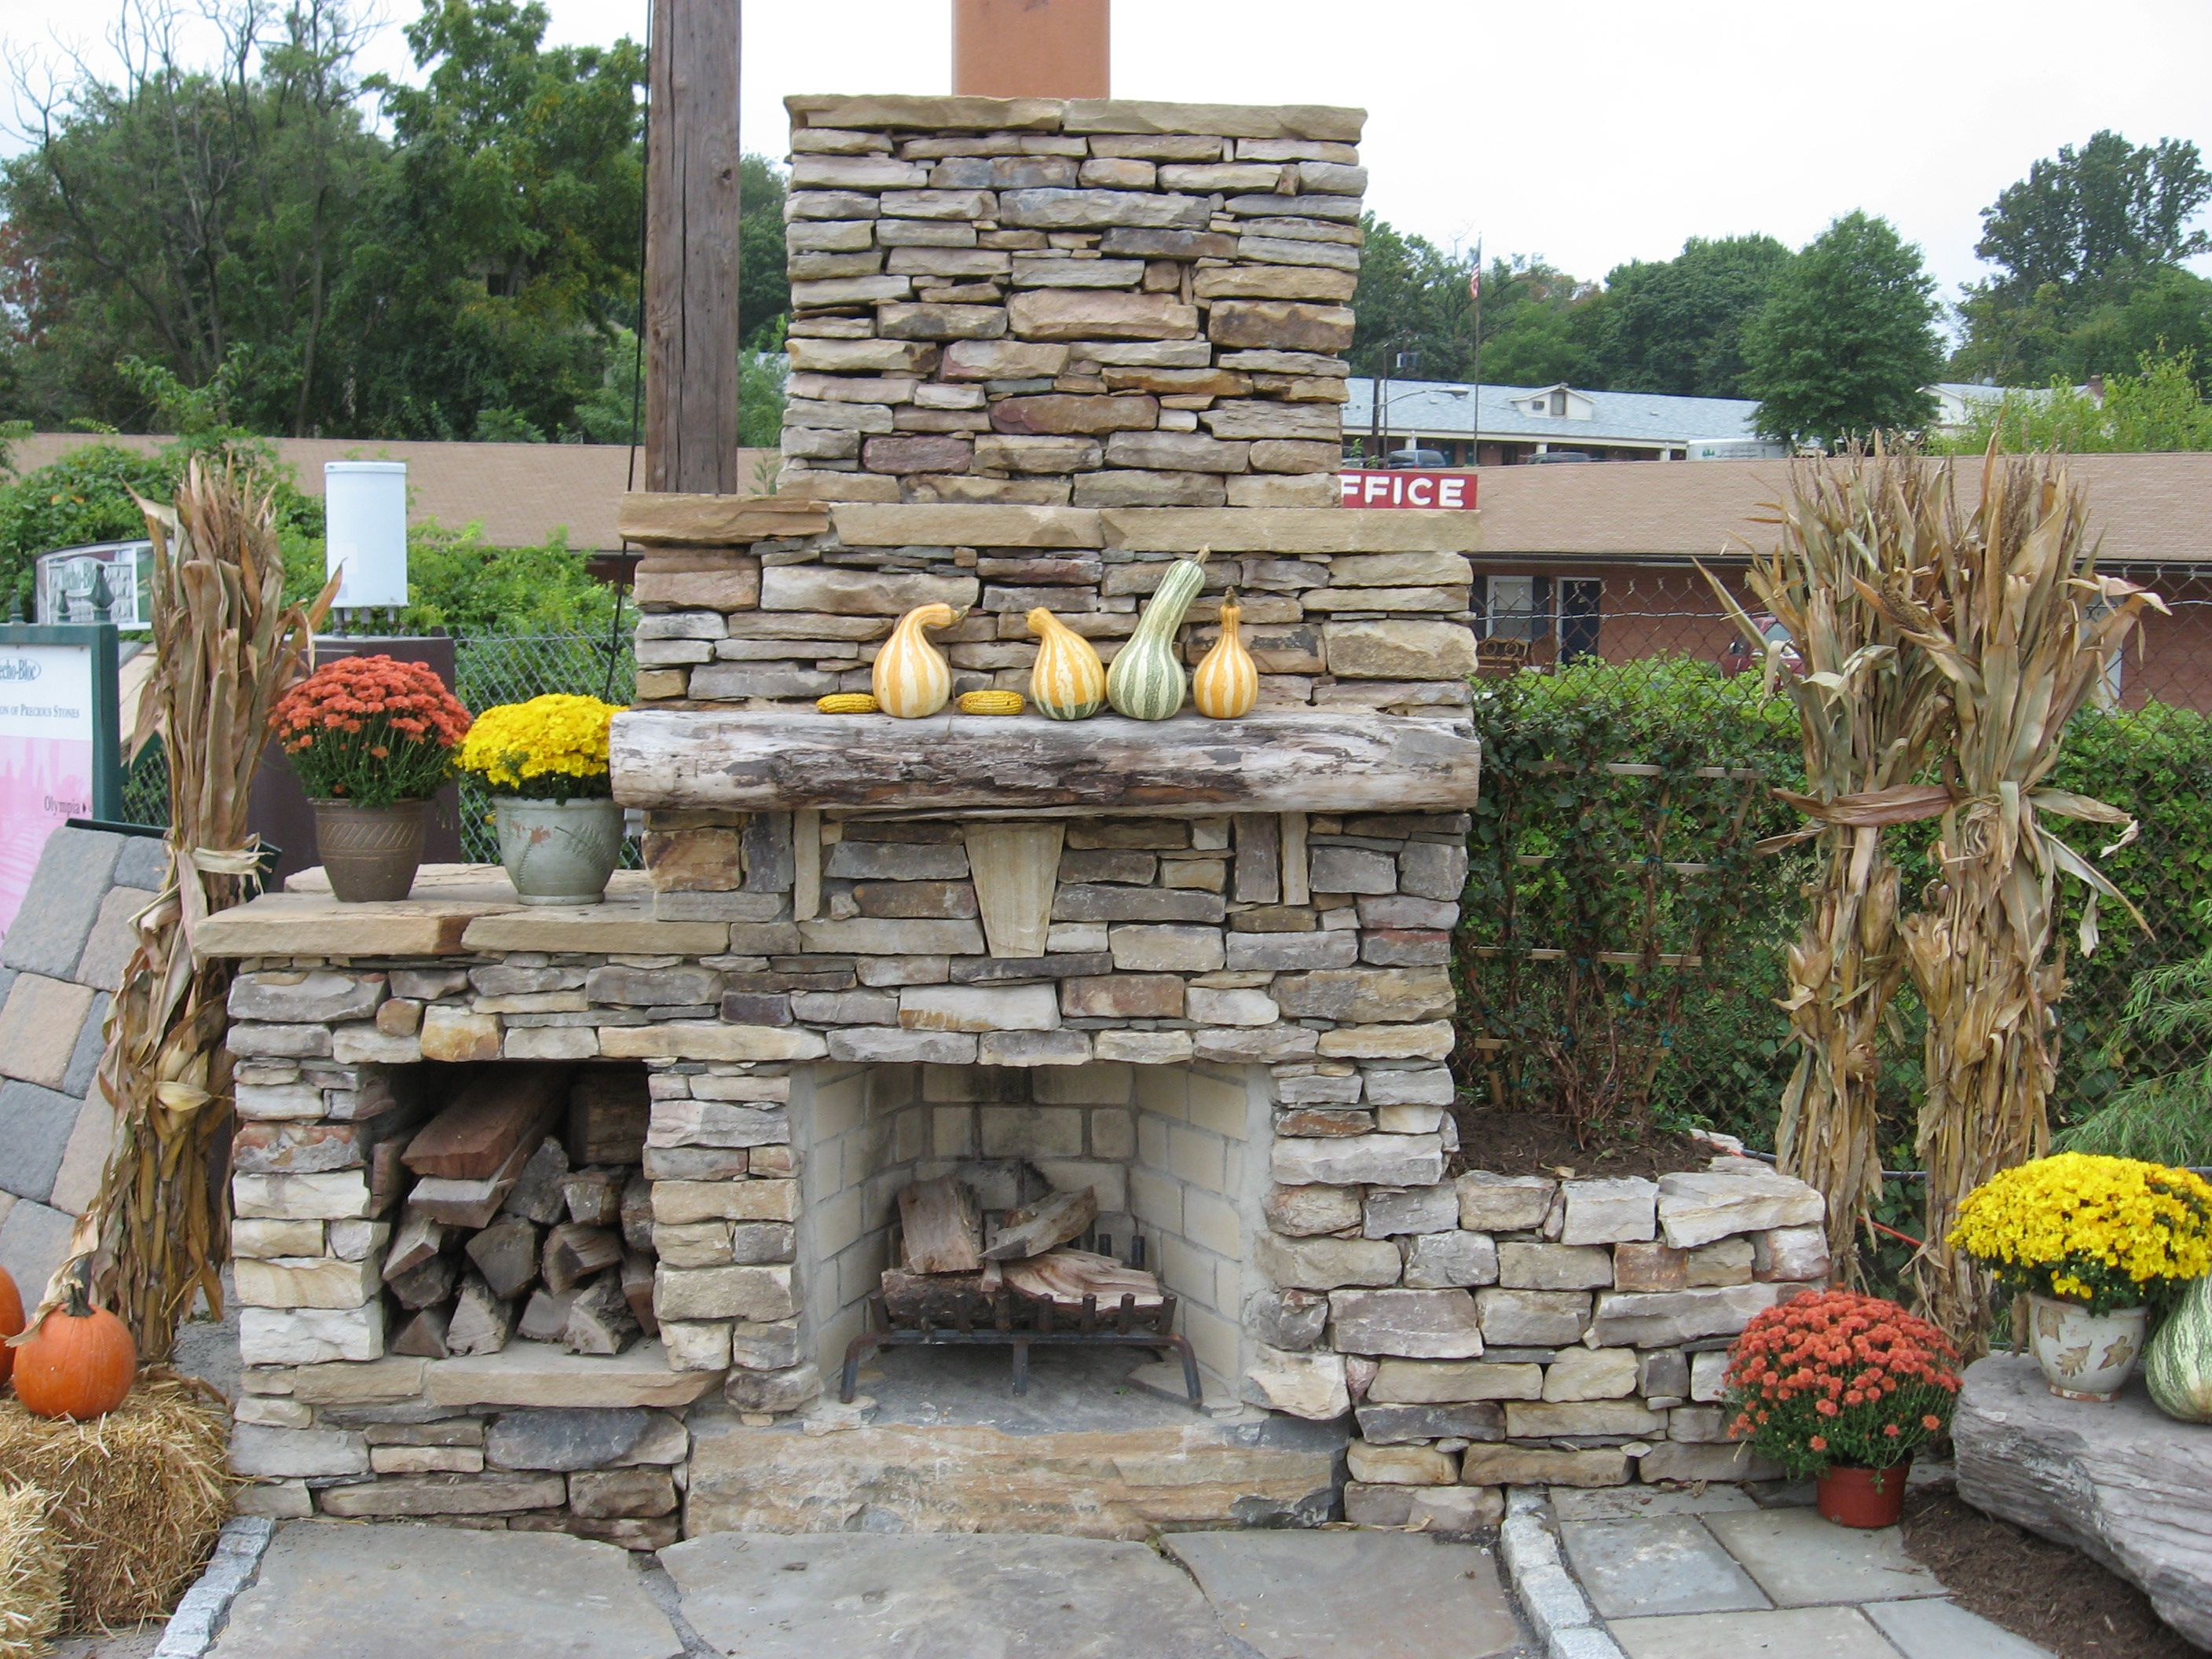 Outdoor Stone Fireplace Warming Up Exterior Space - Traba ... on Outdoor Kitchen And Fireplace Ideas id=66509